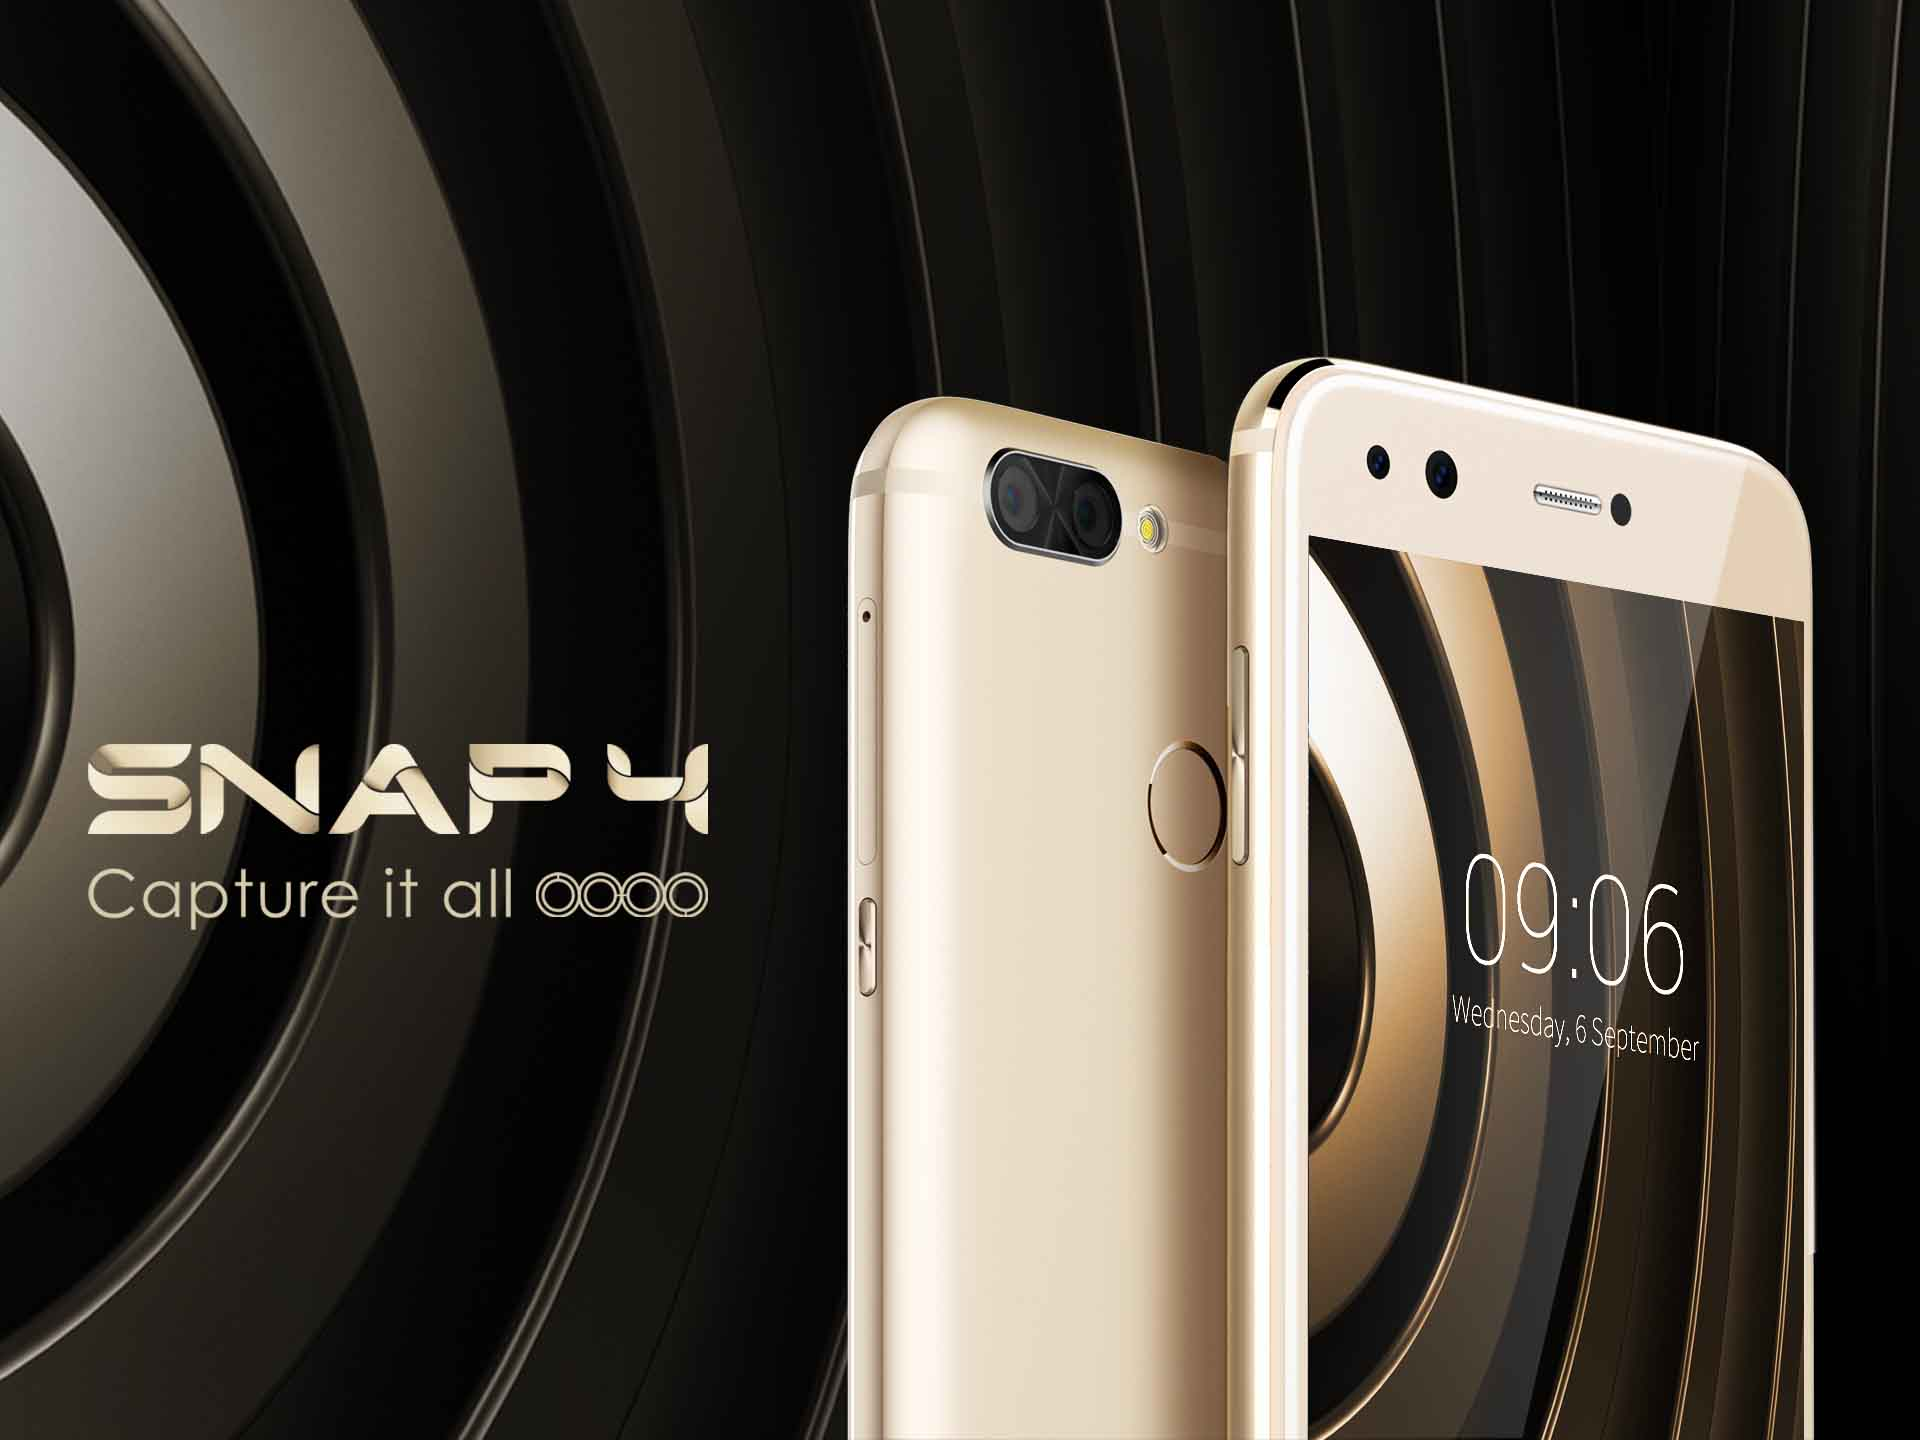 InFocus launched Snap 4 - A Budget Buyer's Solution to Storage